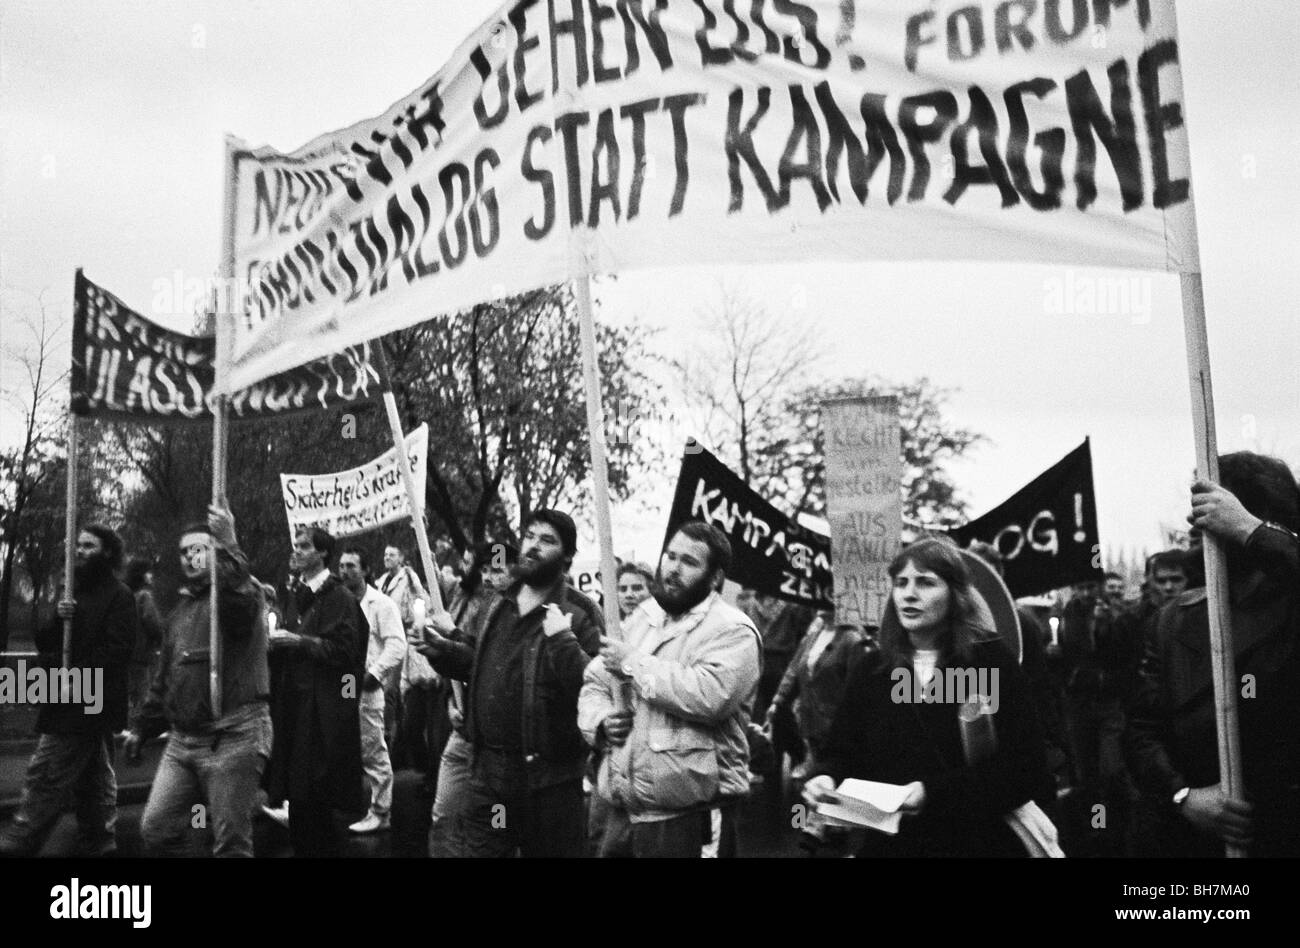 Monday protest in October 1989 in Schwerin, East Germany, Mecklenburg-Western Pomerania, Germany, Europe - Stock Image